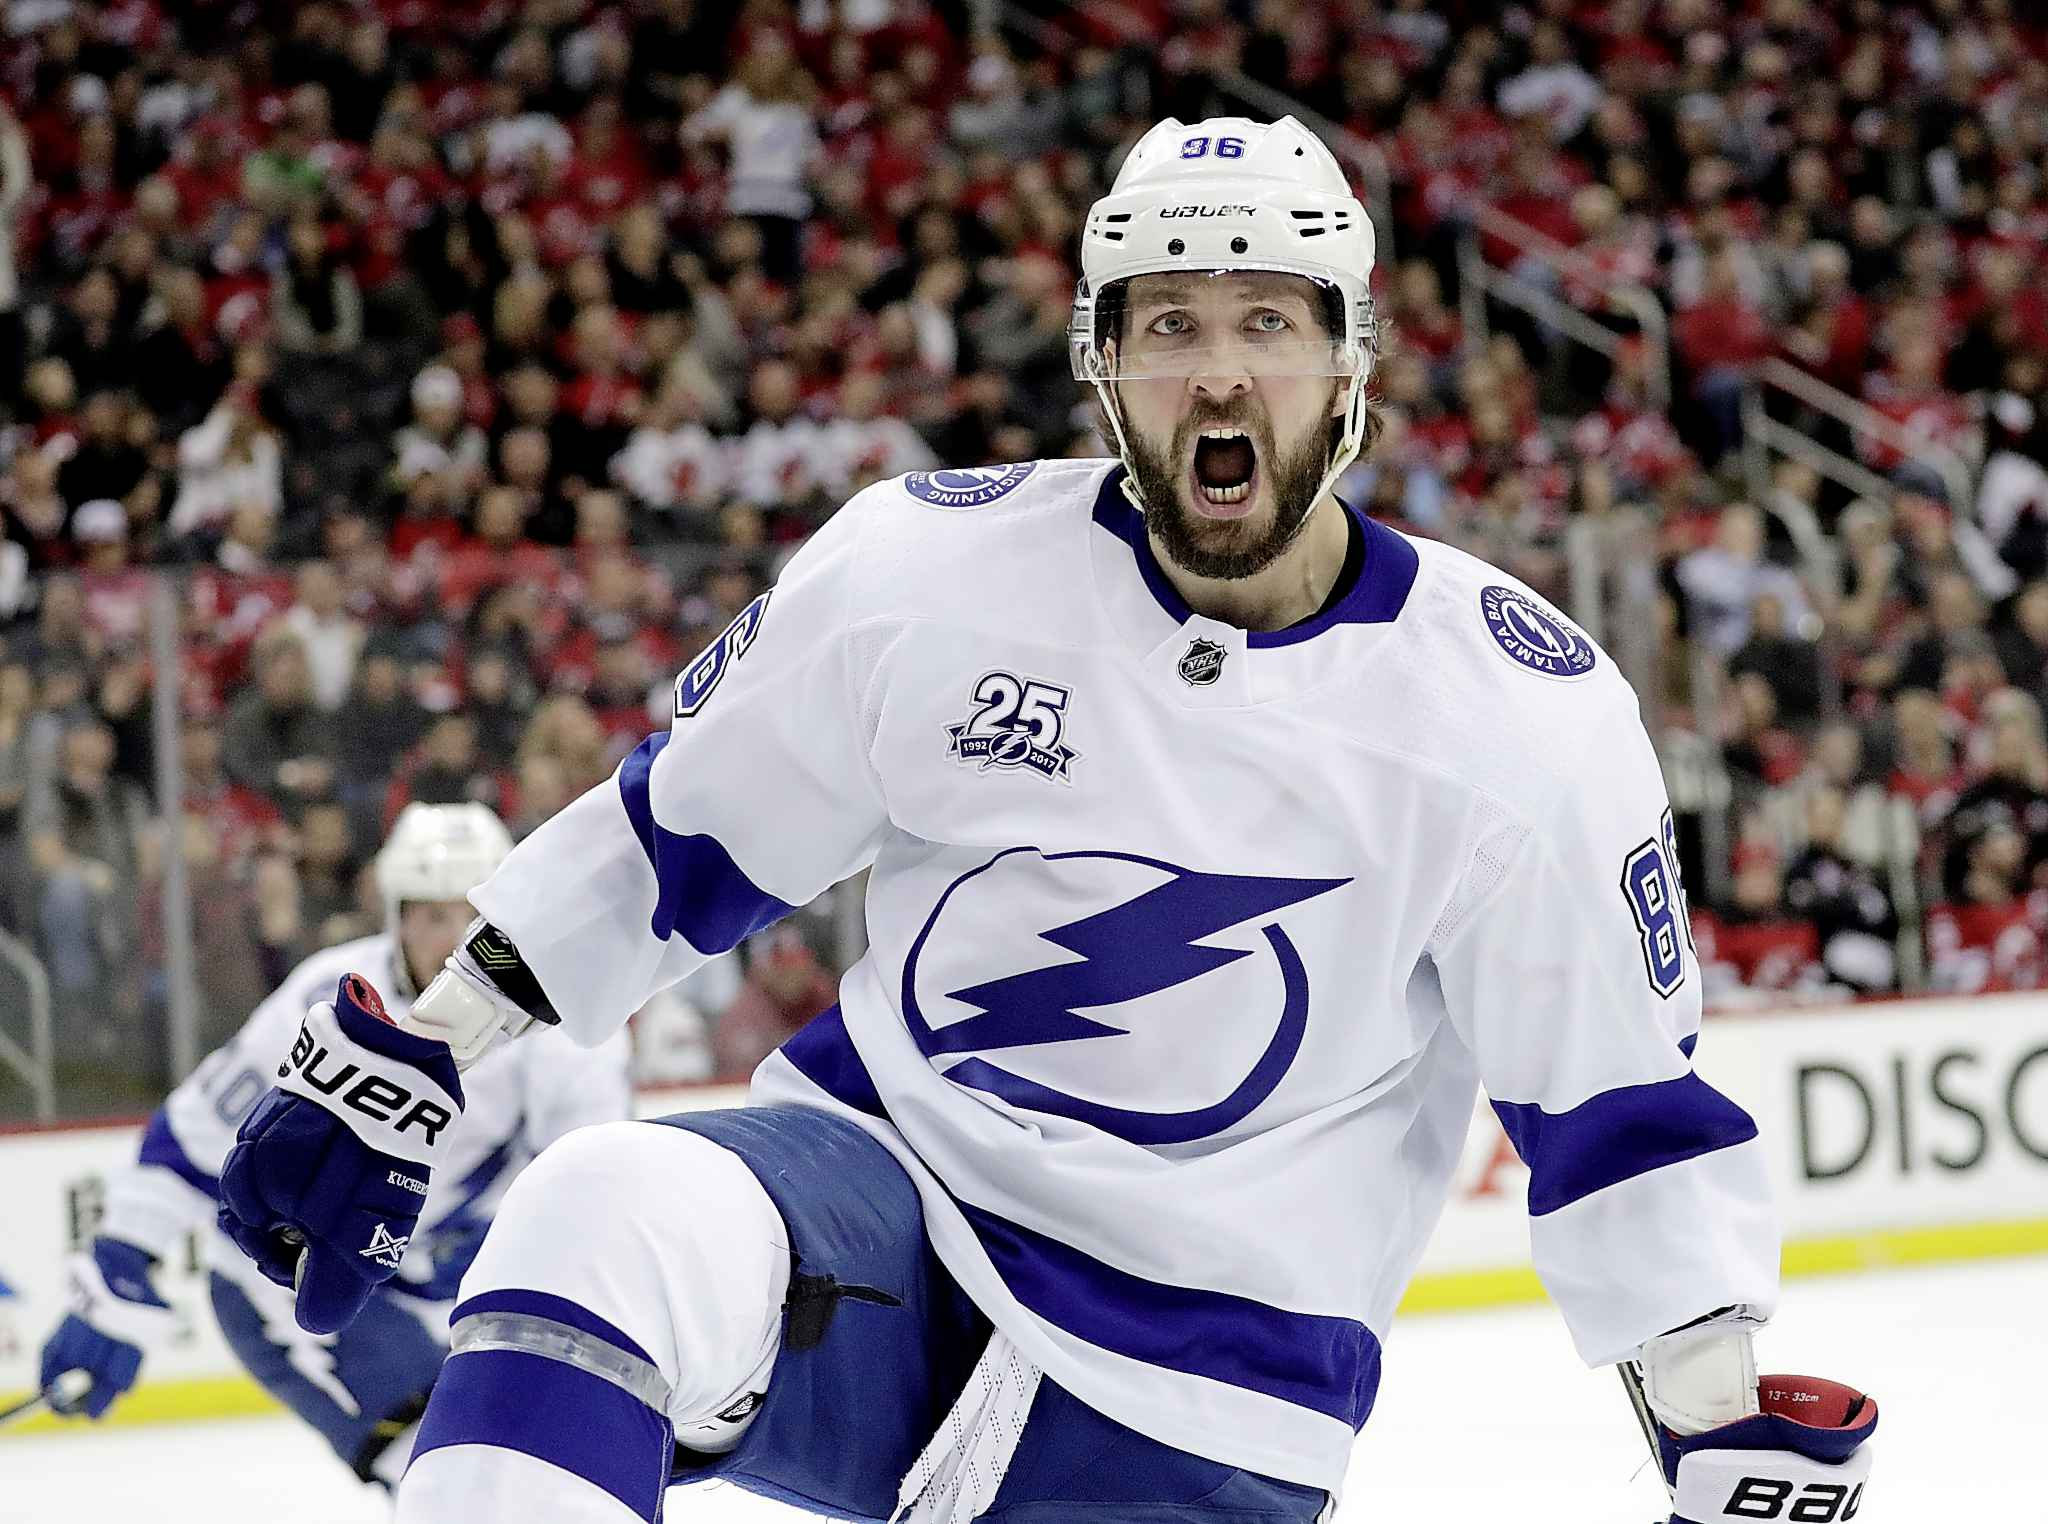 Tampa Bay right wing Nikita Kucherov, drafted in the same year as Mark Scheifele, recently signed an eight-year, $76-million contract extension with the Lightning.